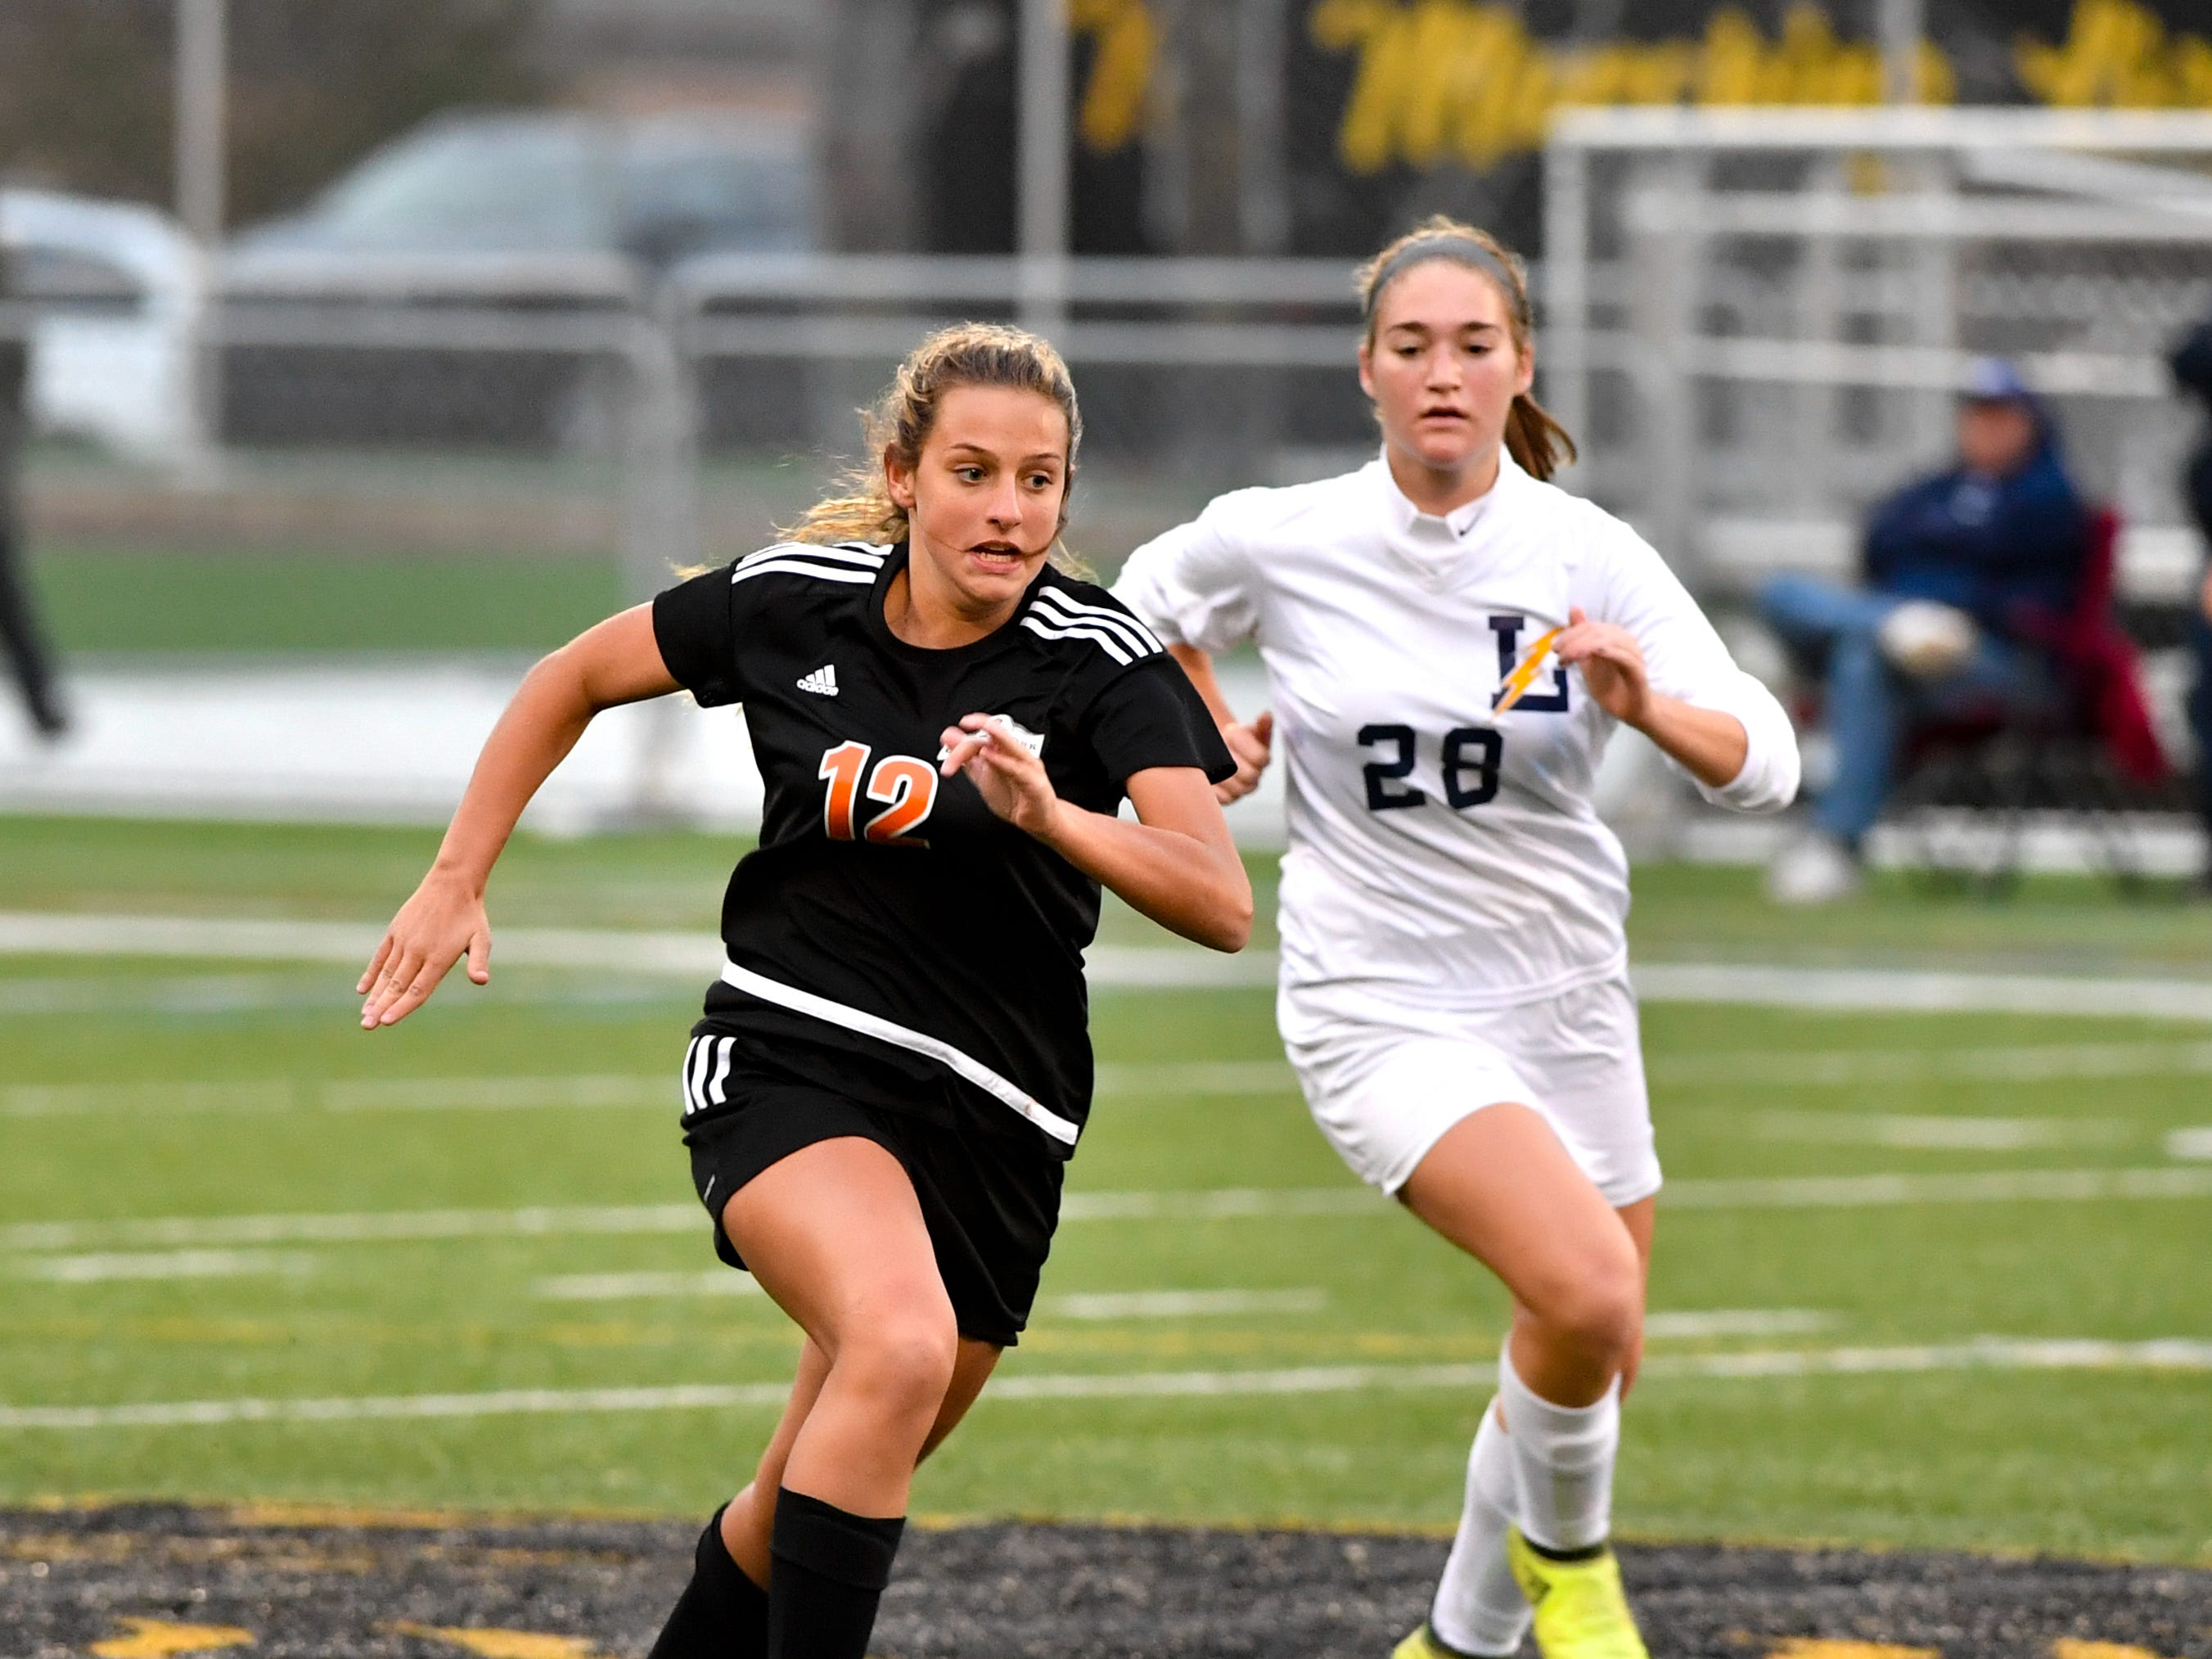 Sophia Yerger (12) of Central York outruns Sydney Miller (28) of Littlestown, October 16, 2018. The Panthers beat the Bolts 6-1.